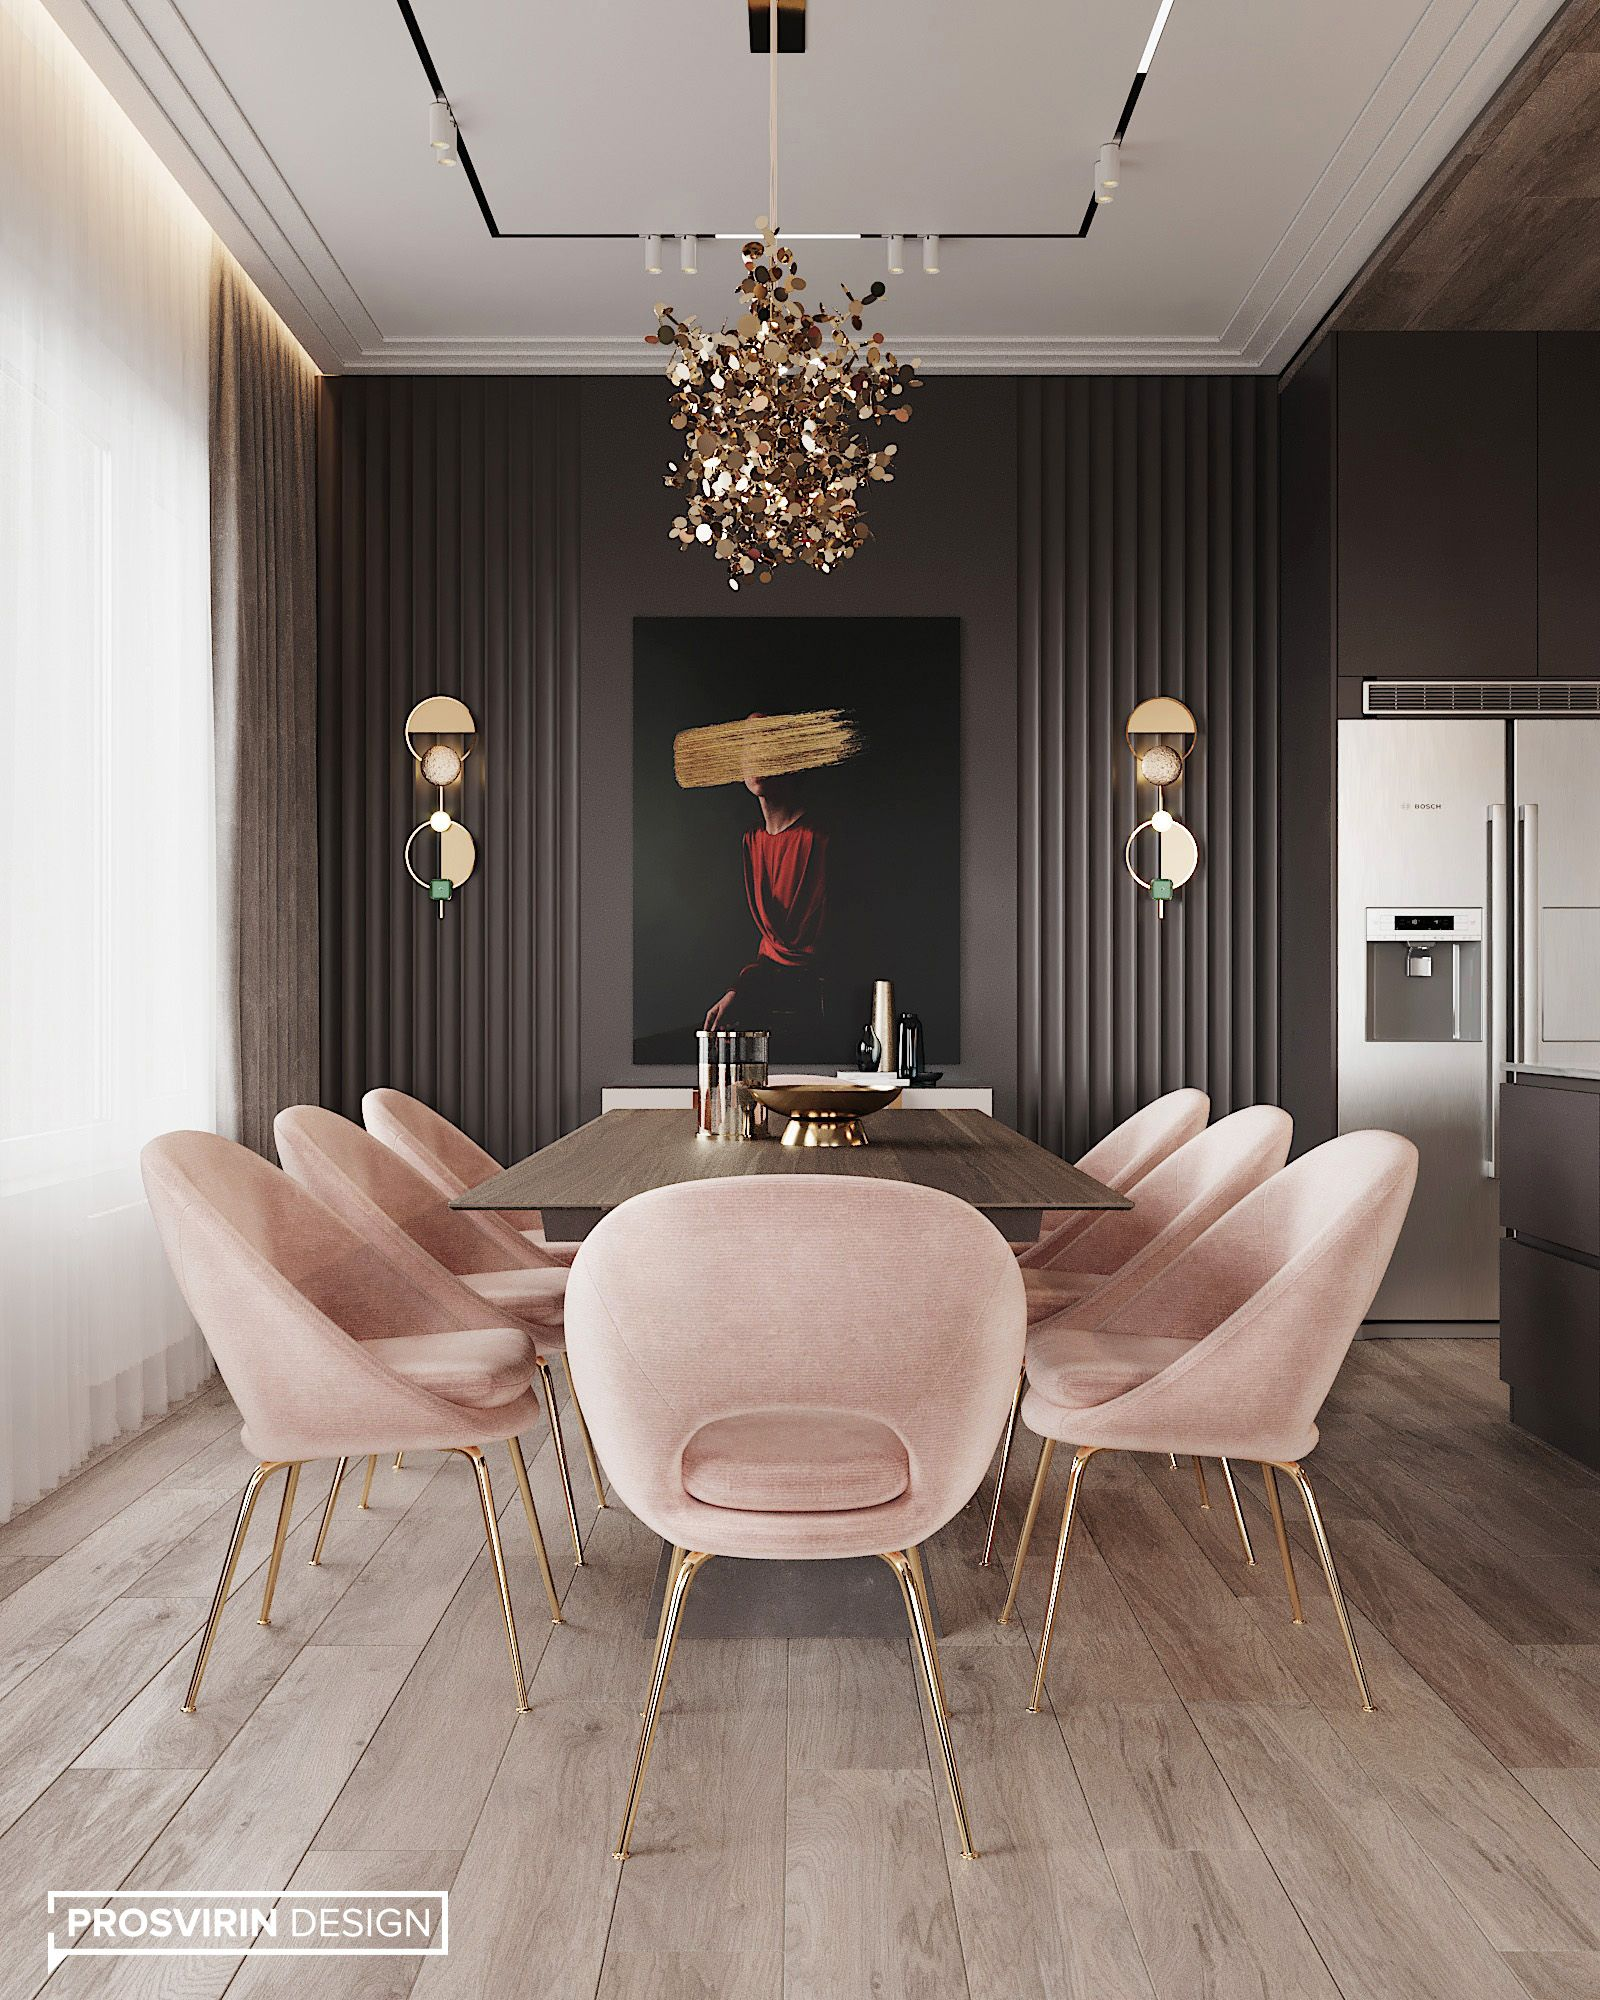 Pin By Prosvirin Design On Home Decoration In 2020 Luxury Dining Room Luxury Living Room Modern Dining Room